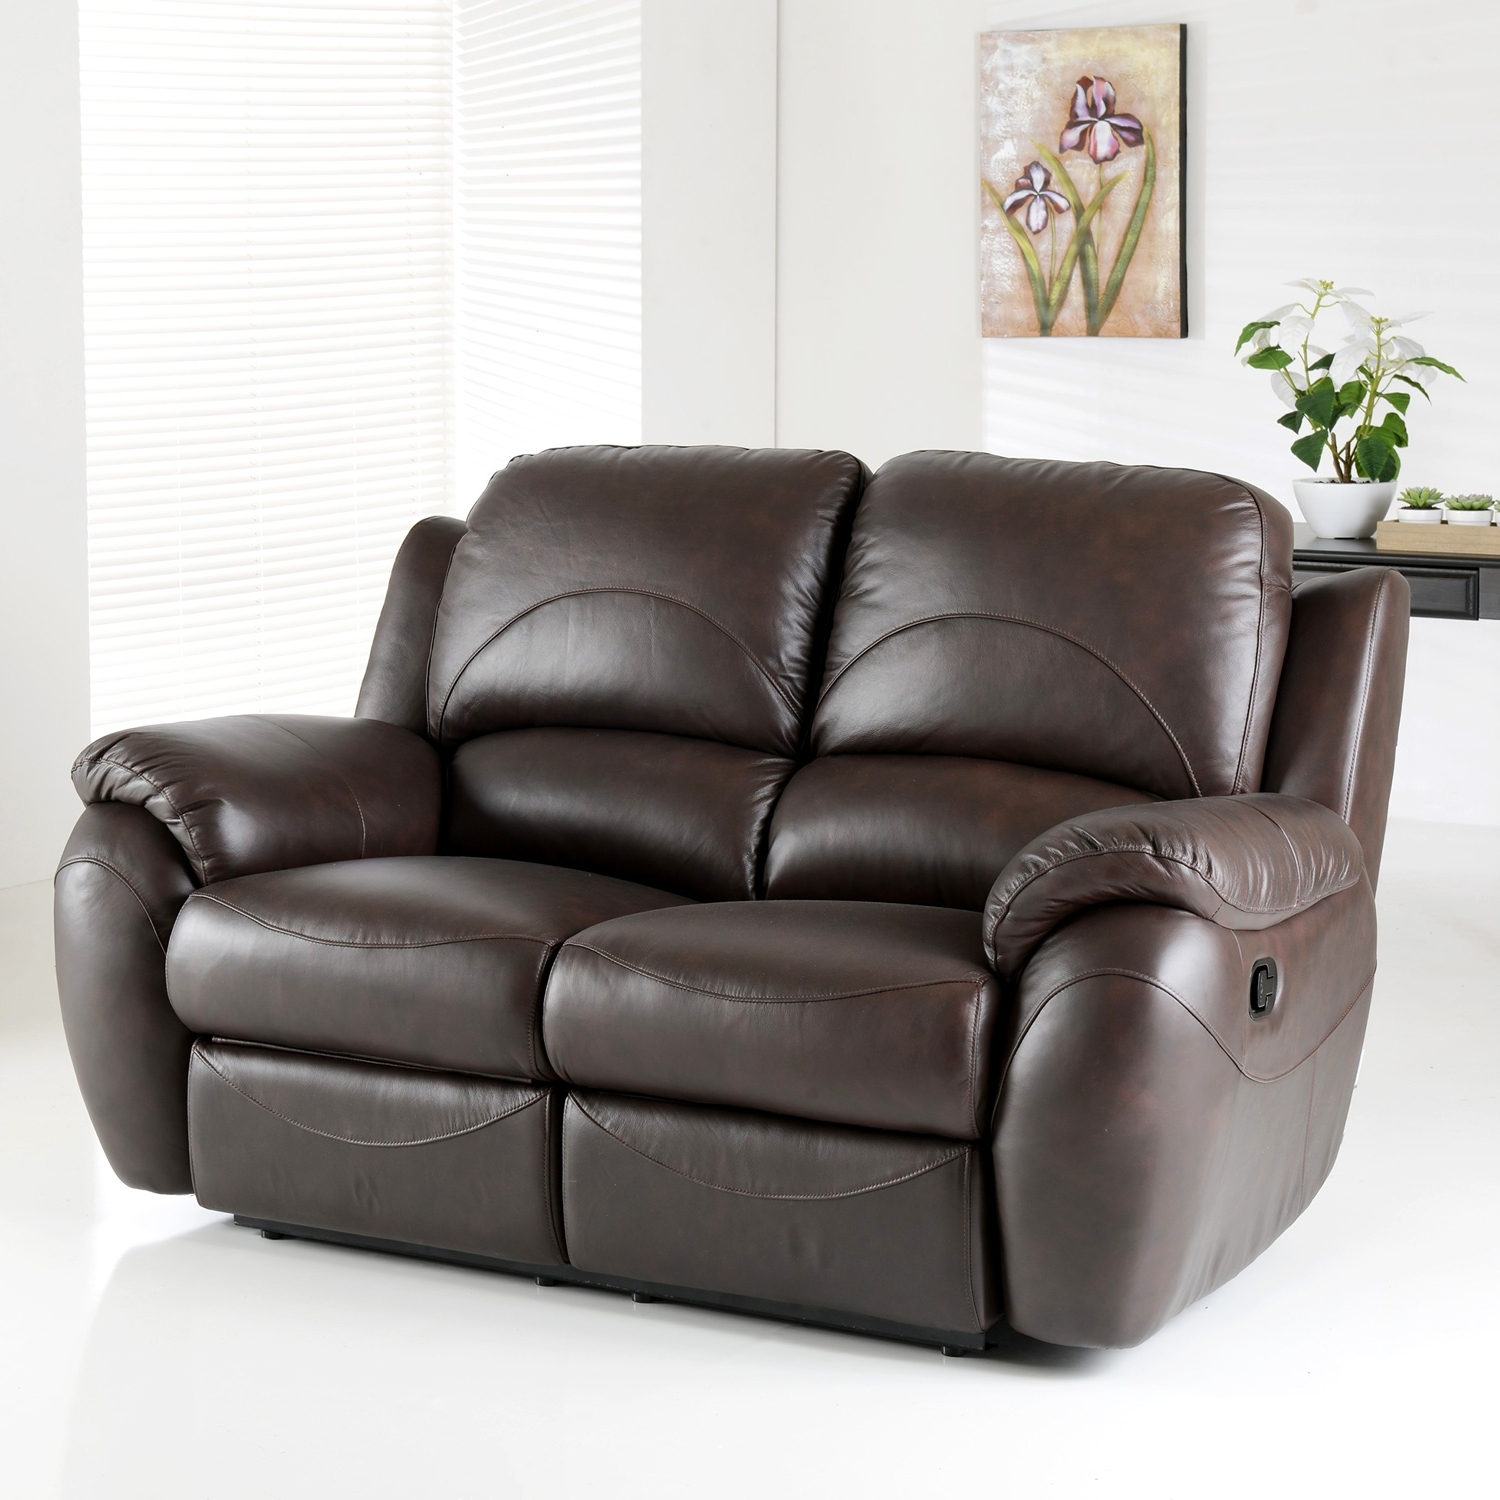 Recent Furniture : Natuzzi Leather Reclining Sectional Big Softie Chair Within 2 Seat Sectional Sofas (View 15 of 20)